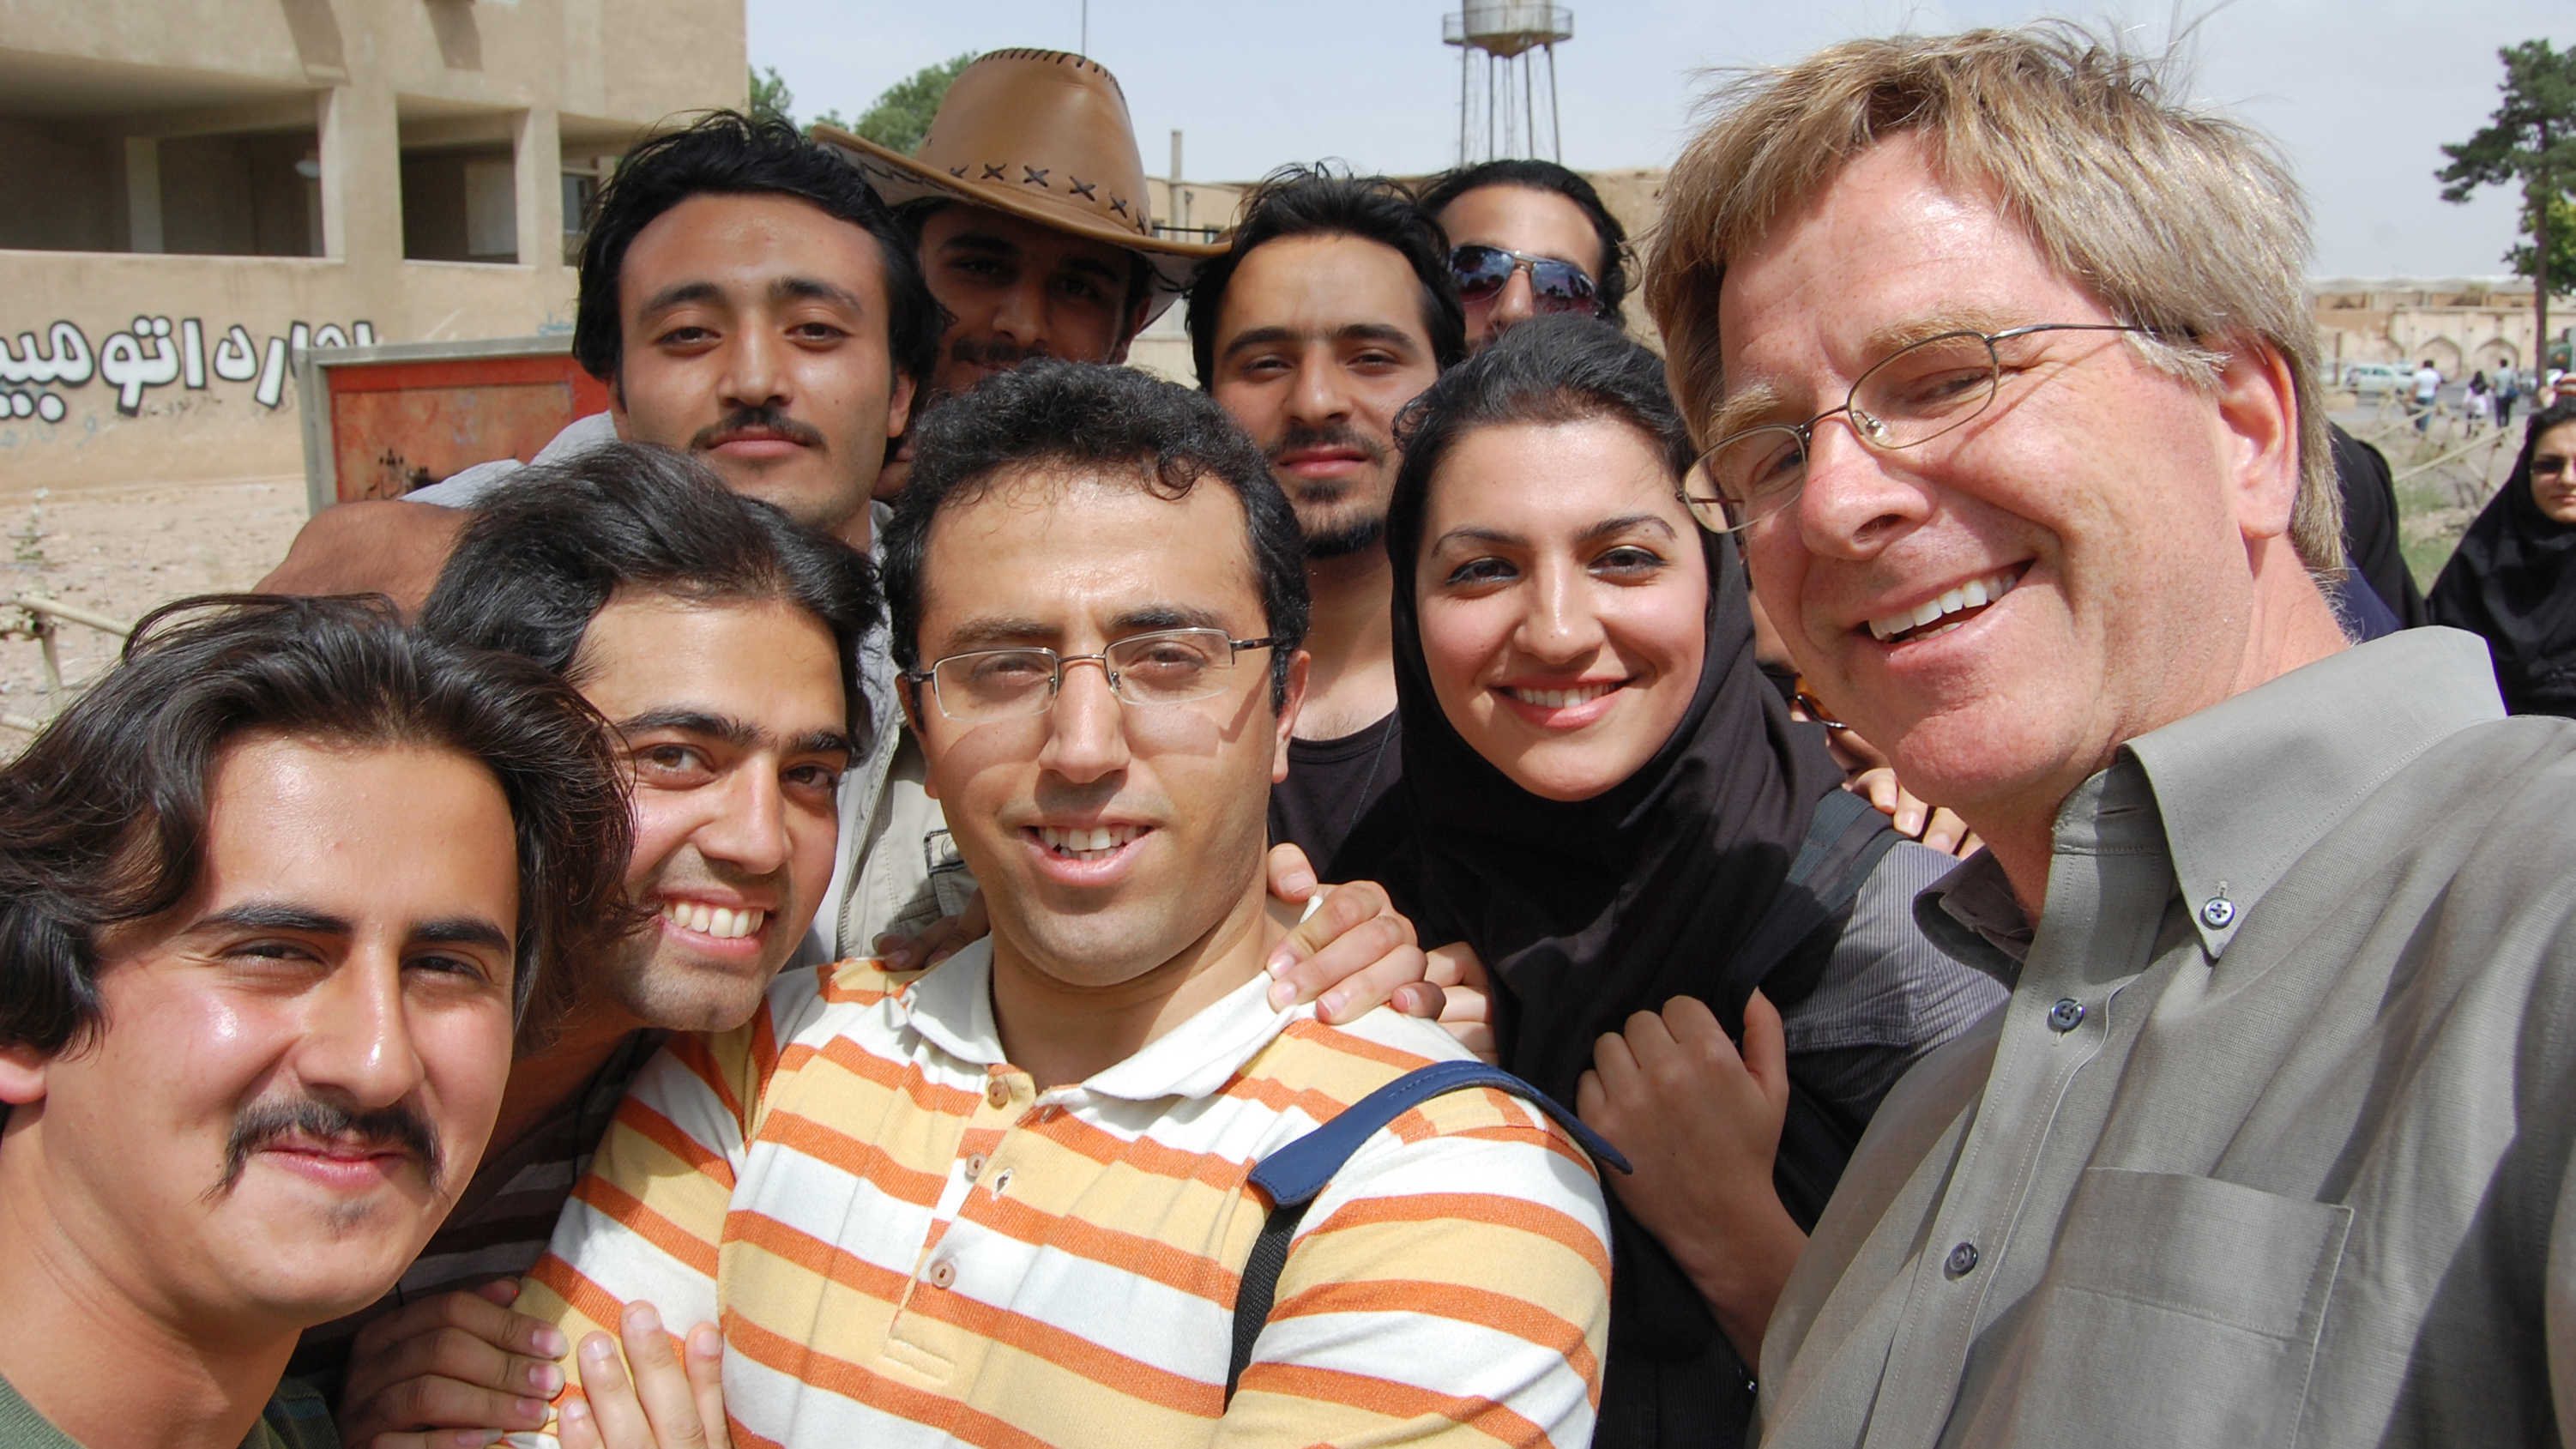 Rick Steves poses with students